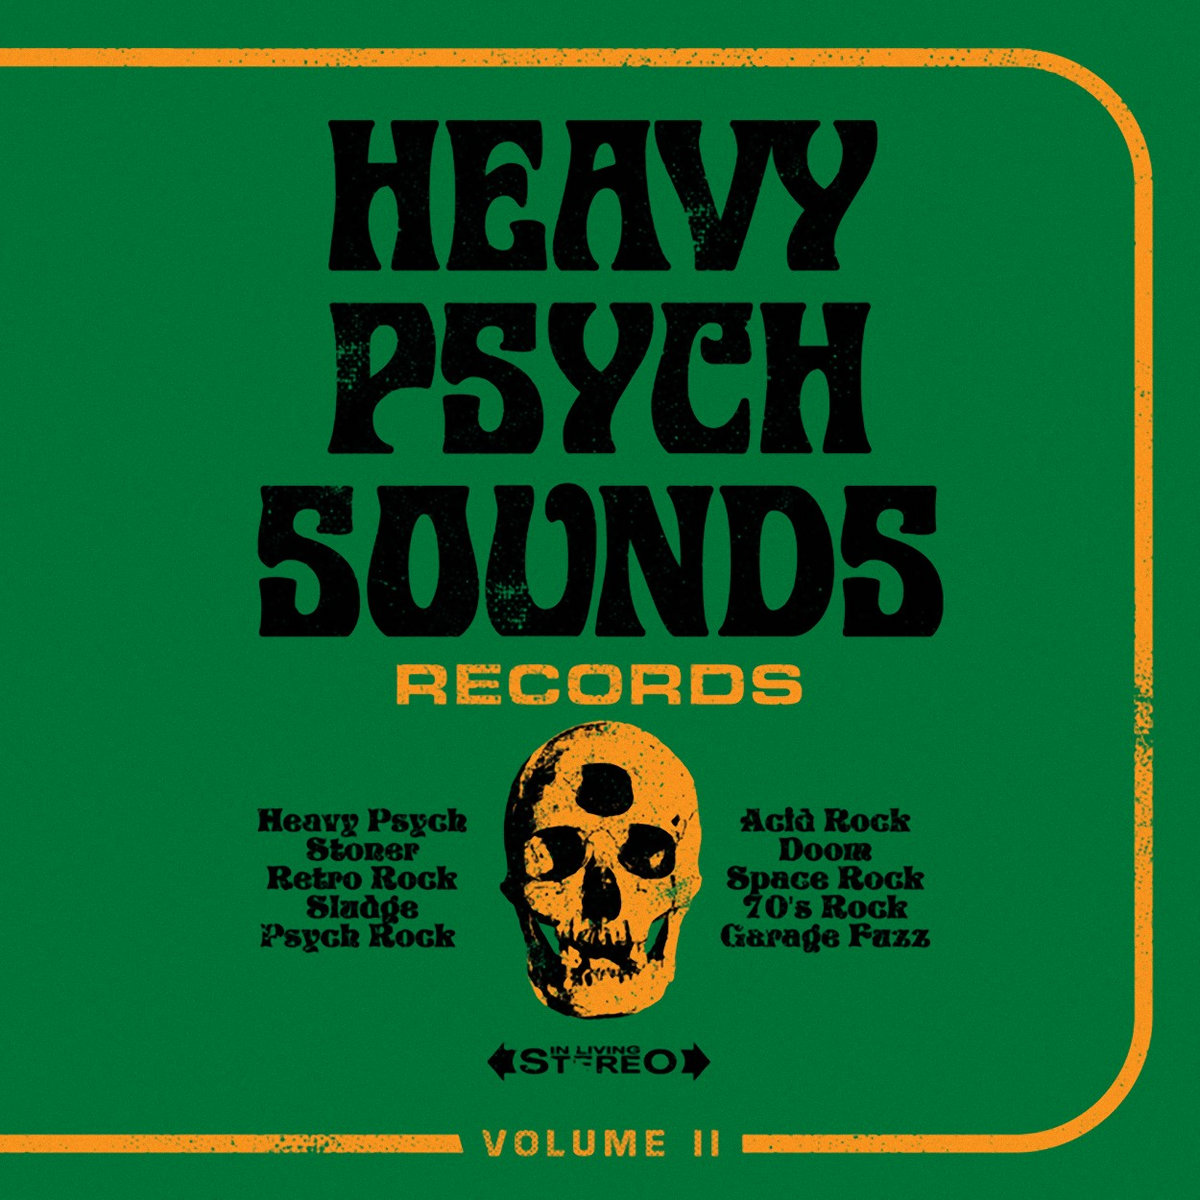 HEAVY PSYCH SOUNDS Sampler VOL II | HEAVY PSYCH SOUNDS Records